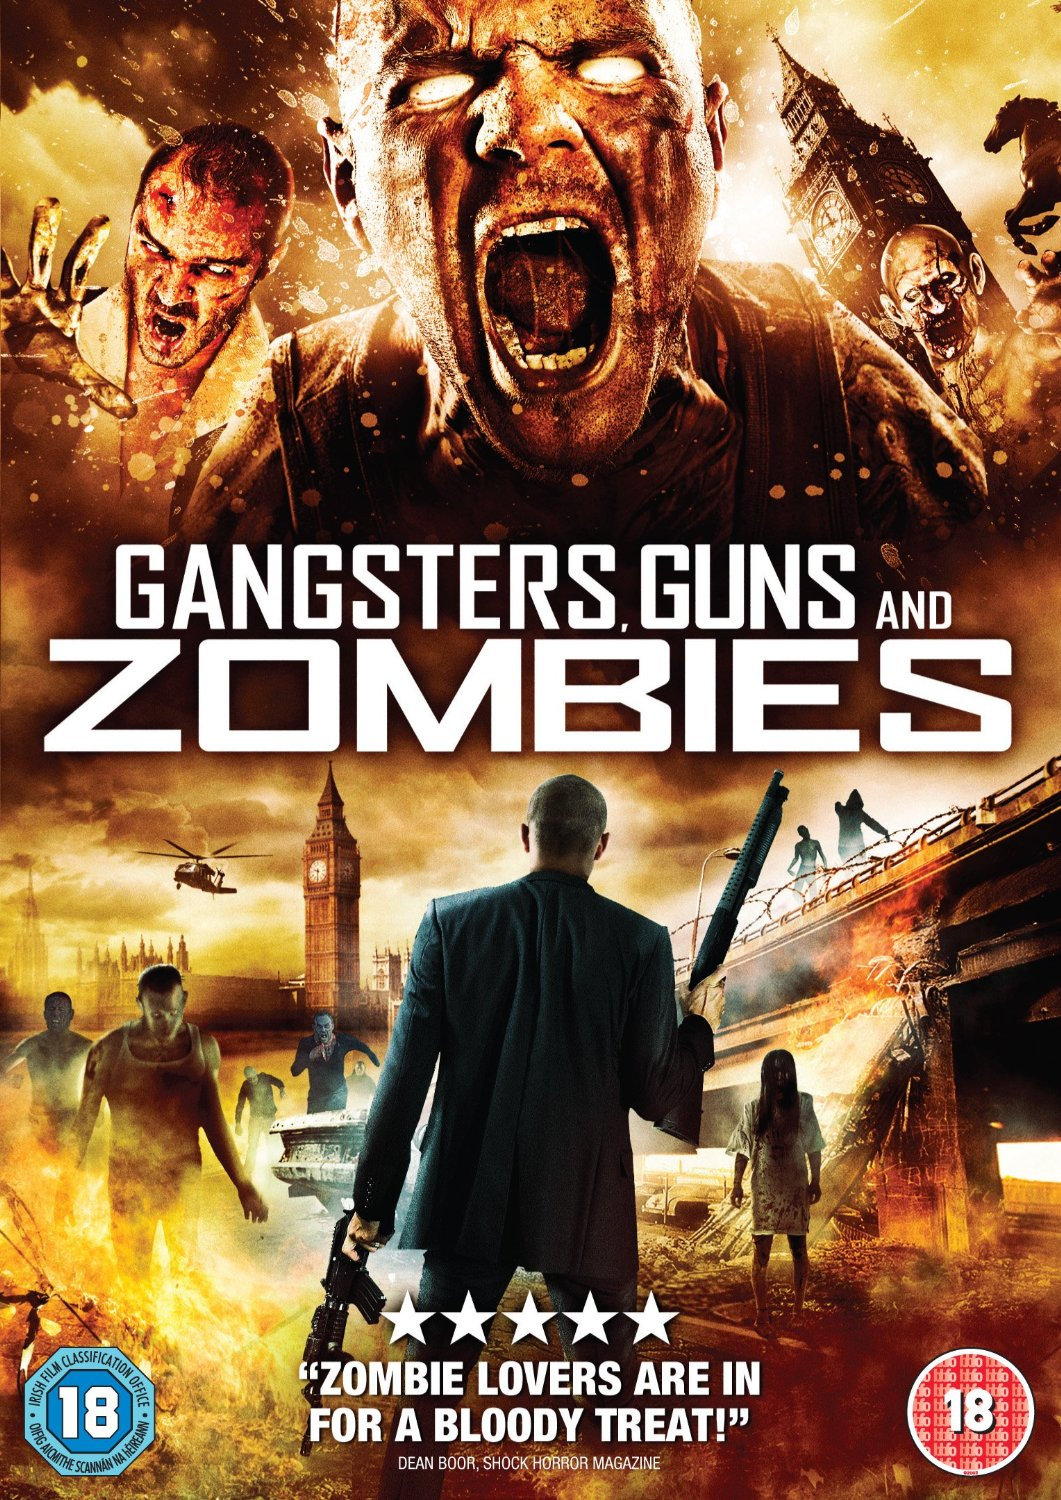 Watching The Dead: Gangsters, Guns & Zombies - review